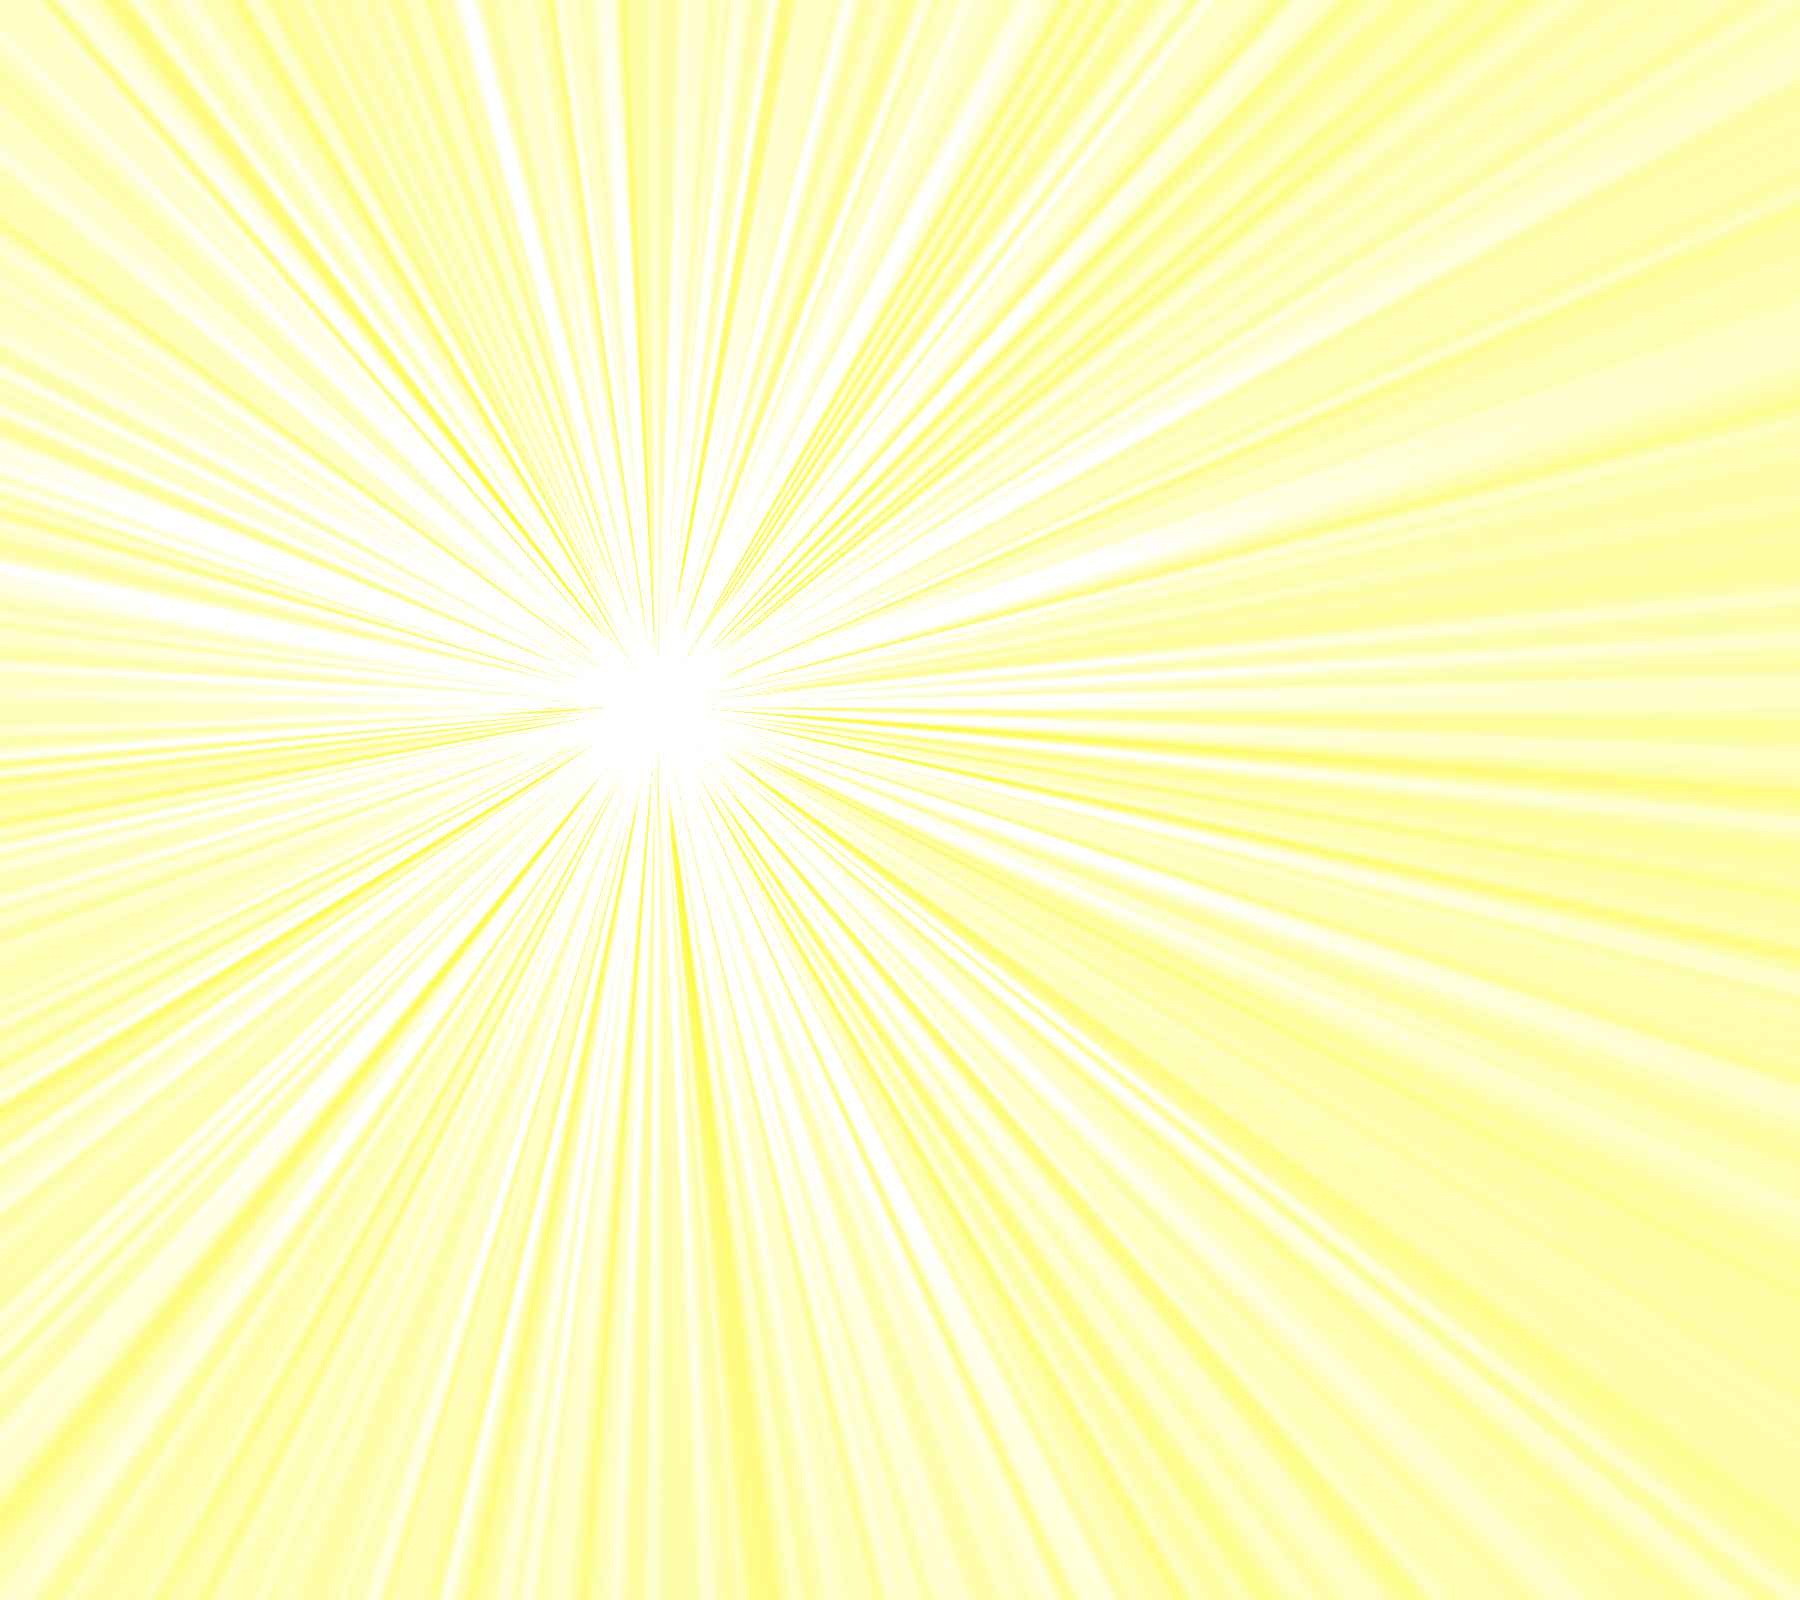 Light Yellow Starburst Radiating Lines Background